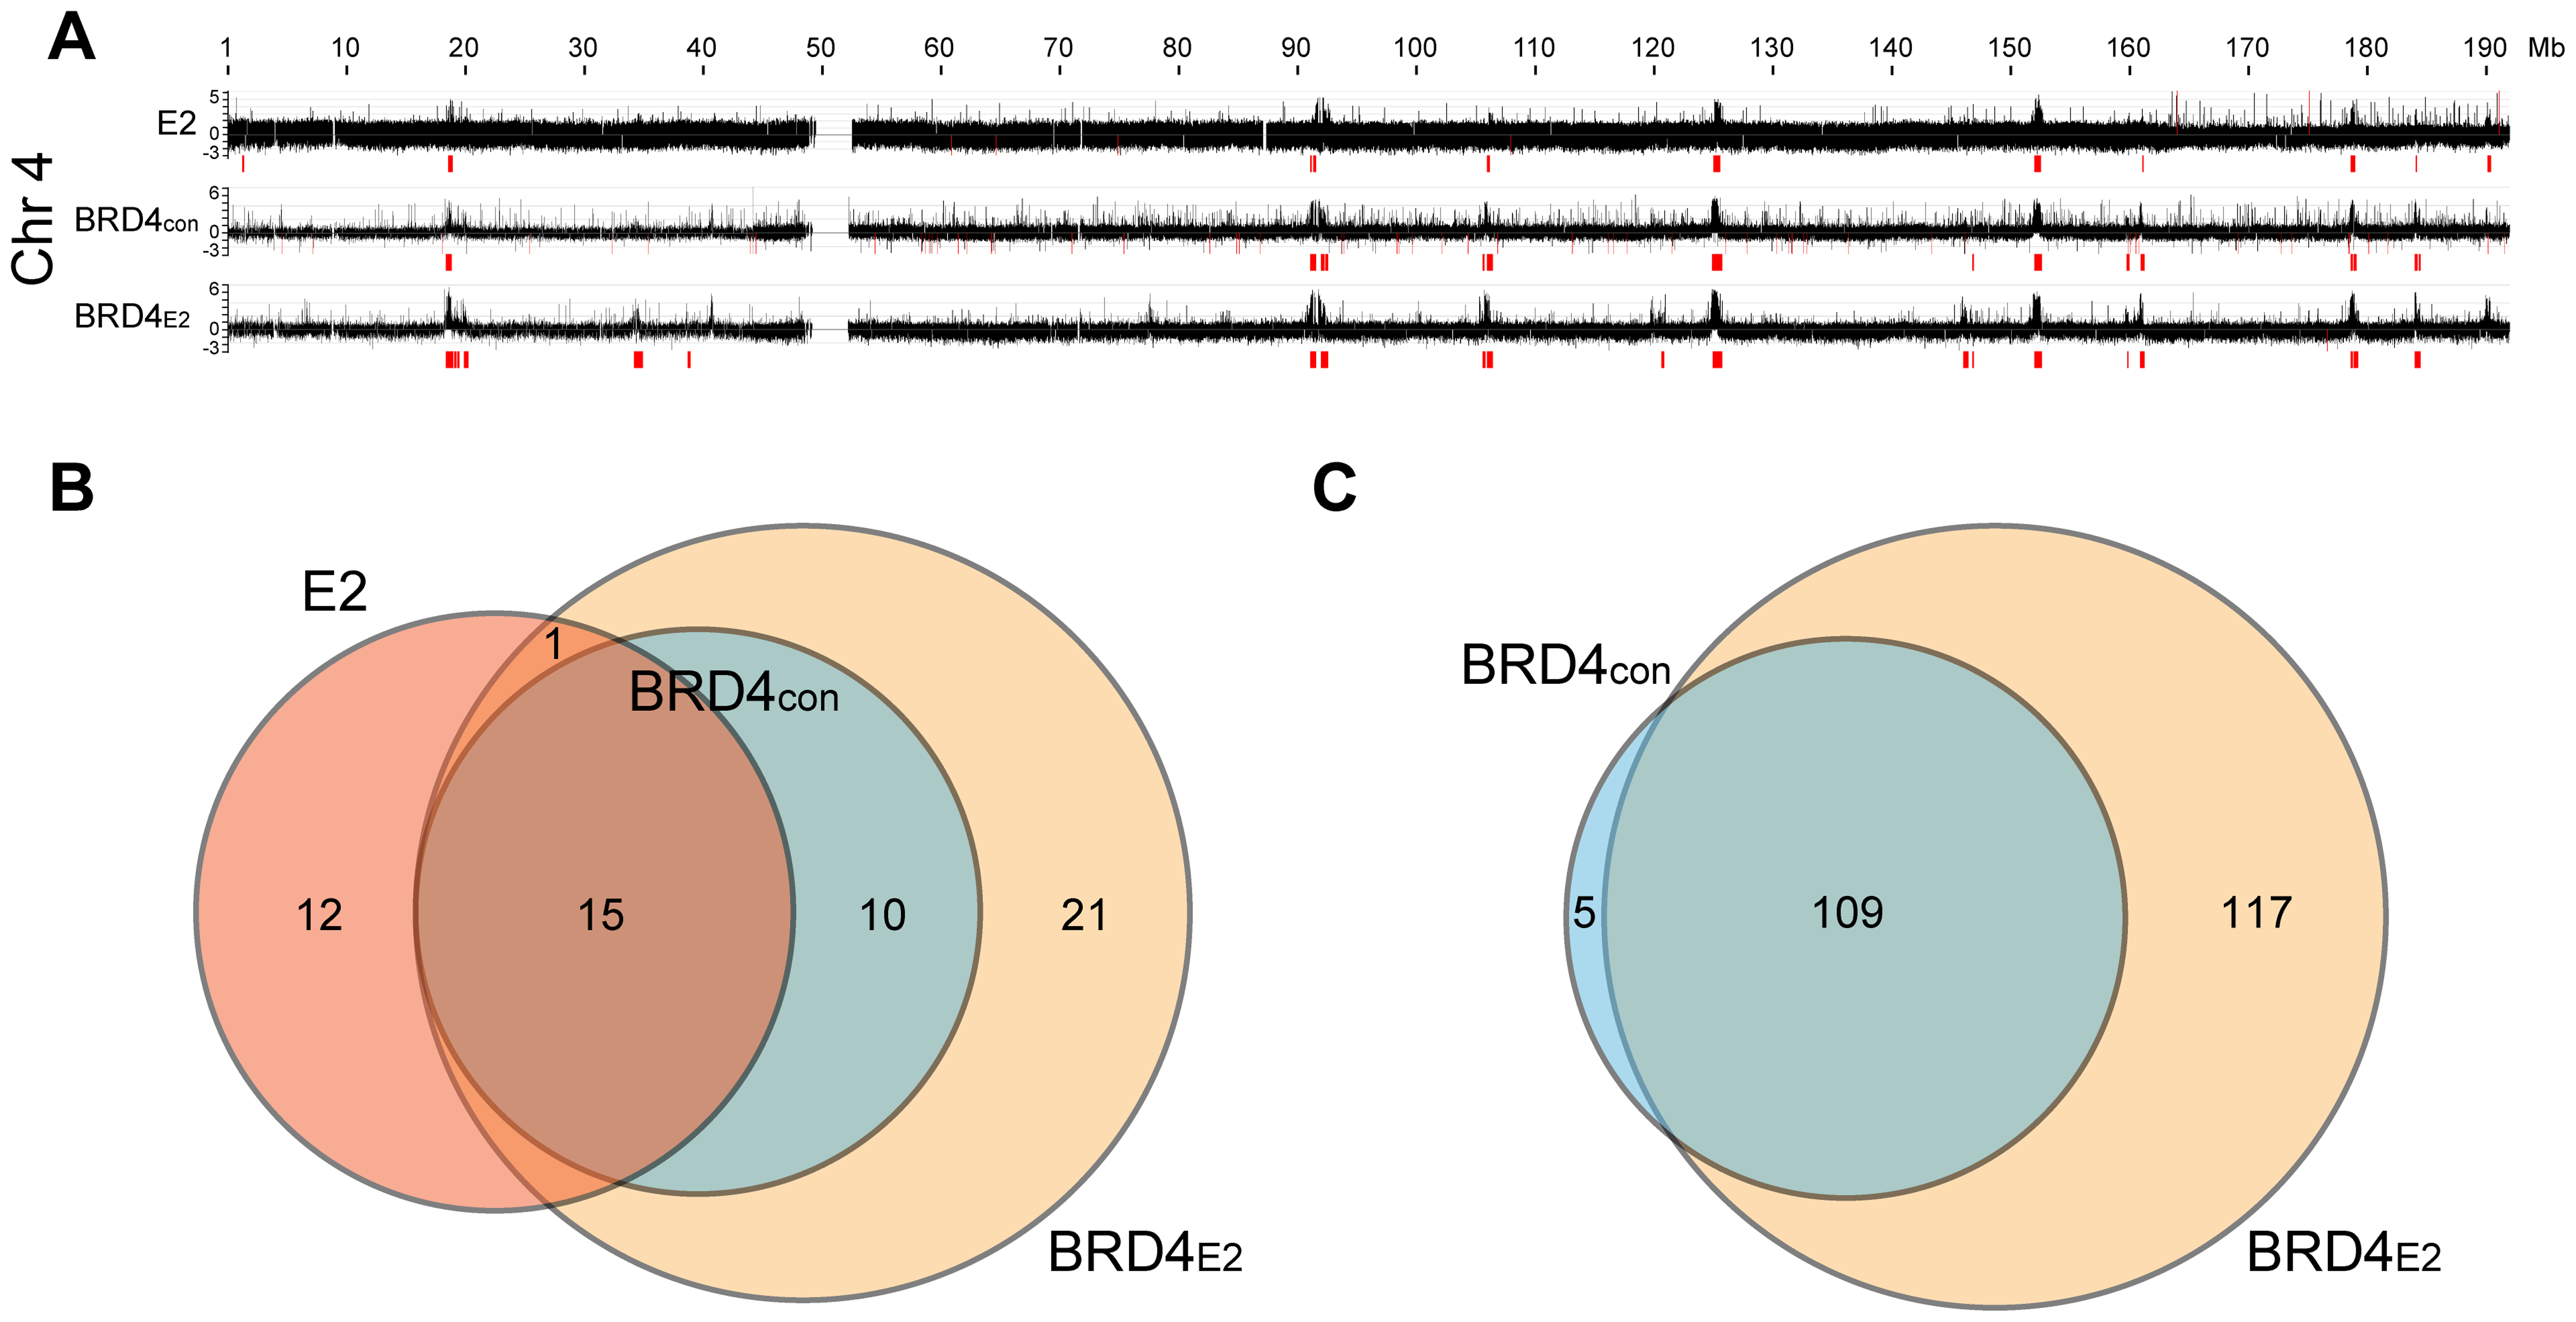 Profile of BRD4 binding to human chromosomes in C-33-1E2 cells.